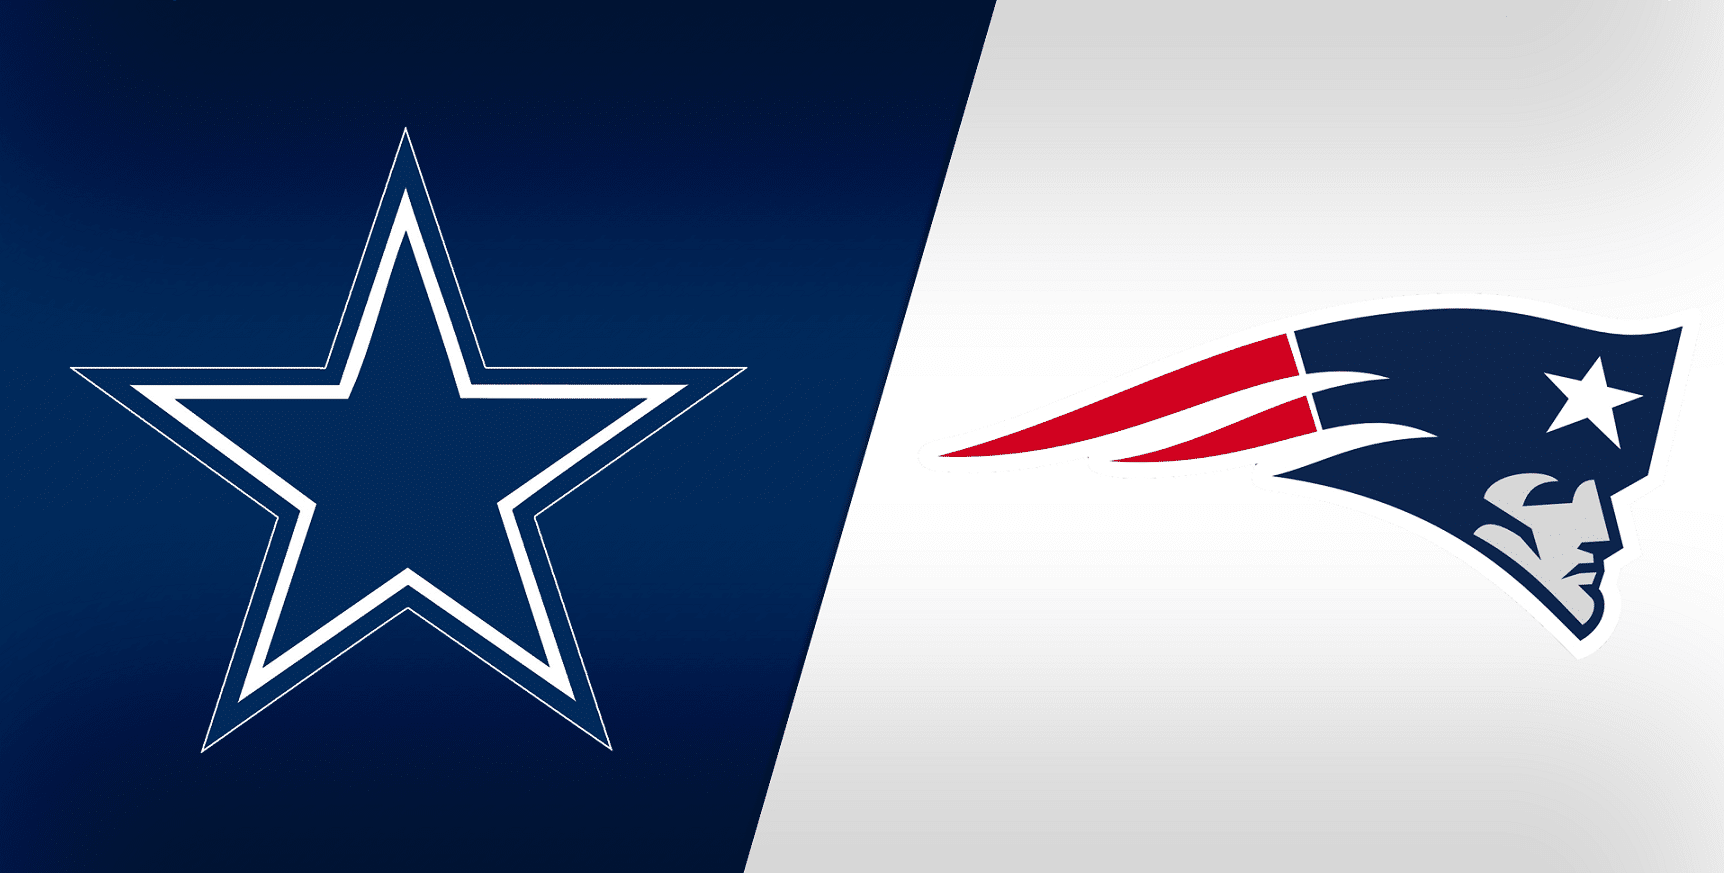 Odds On Who Will Win By More—The Dallas Cowboys Or New England Patriots?